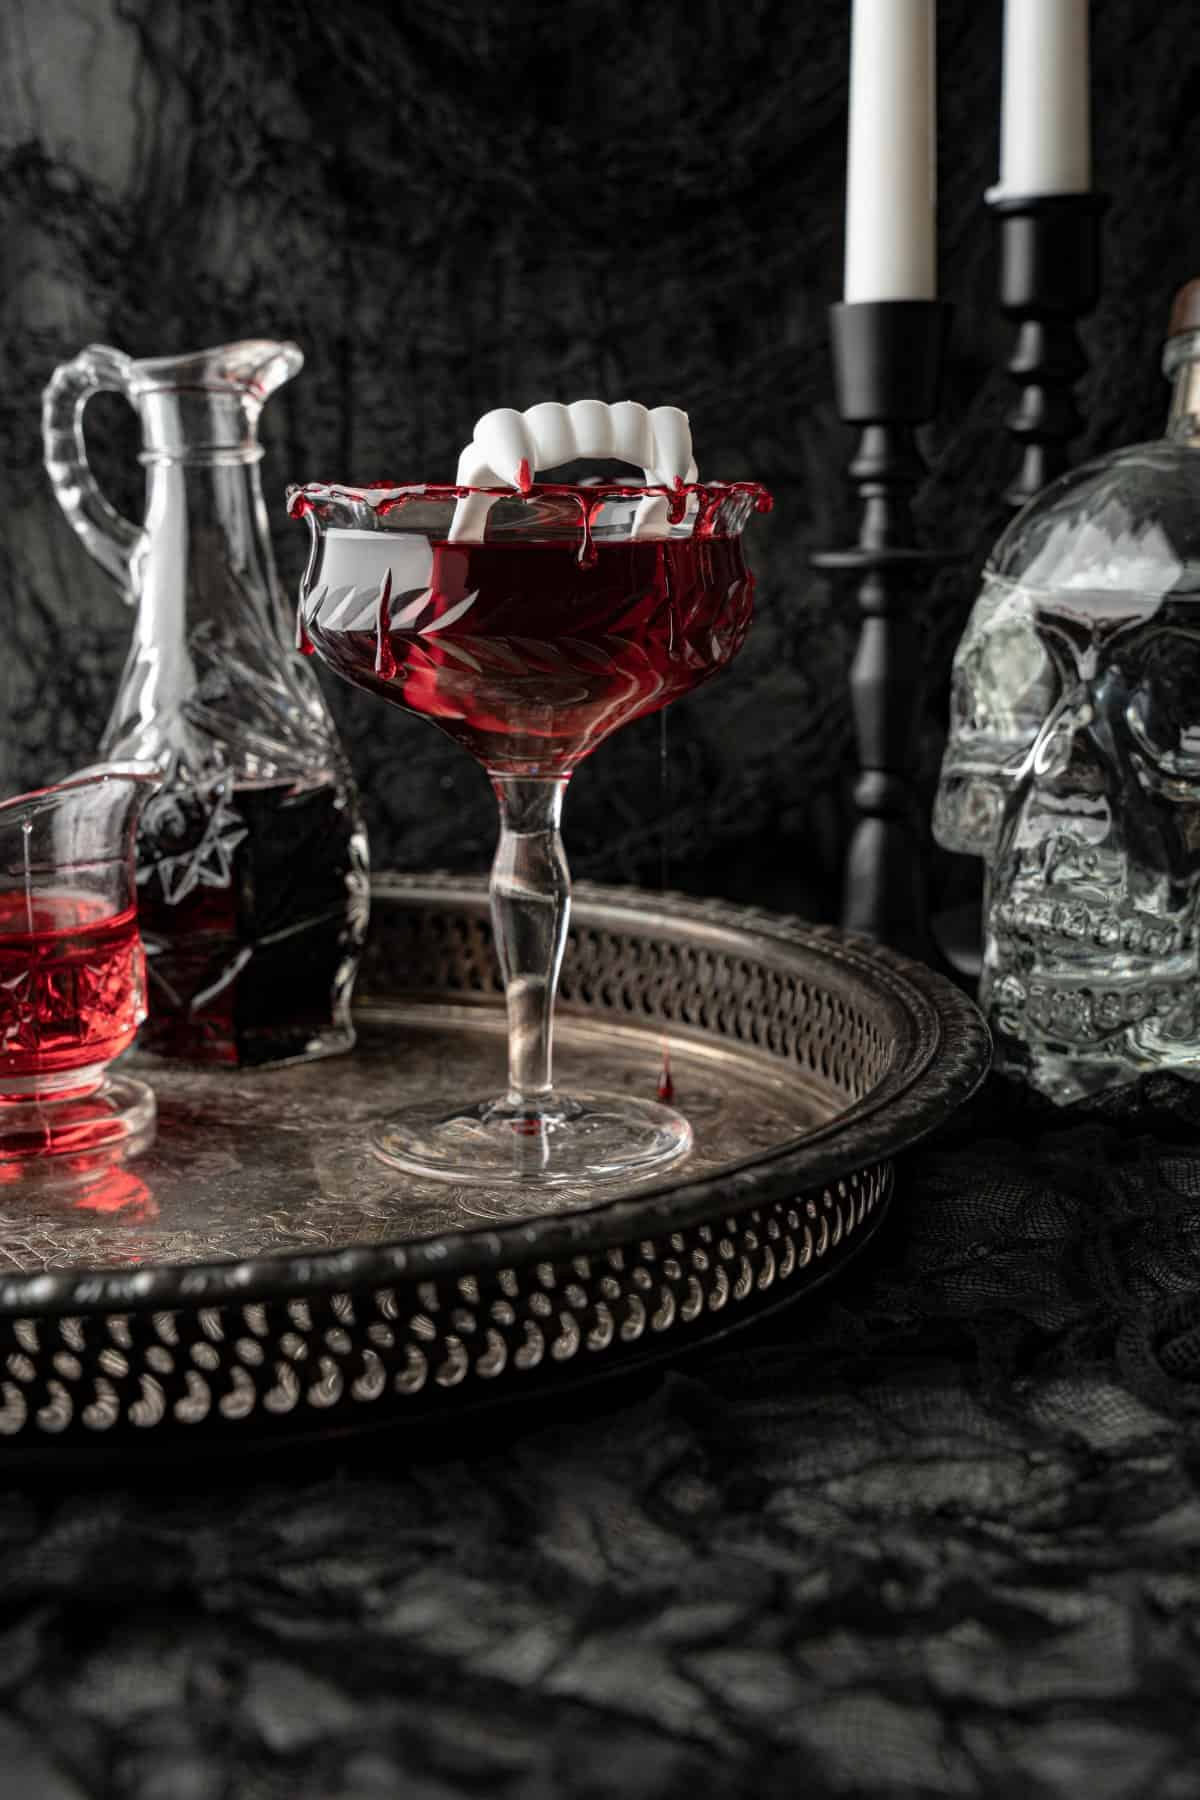 Dripping blood from a Dracula's Kiss cocktail on a silver tray with a glass skull, candles and other decanters.